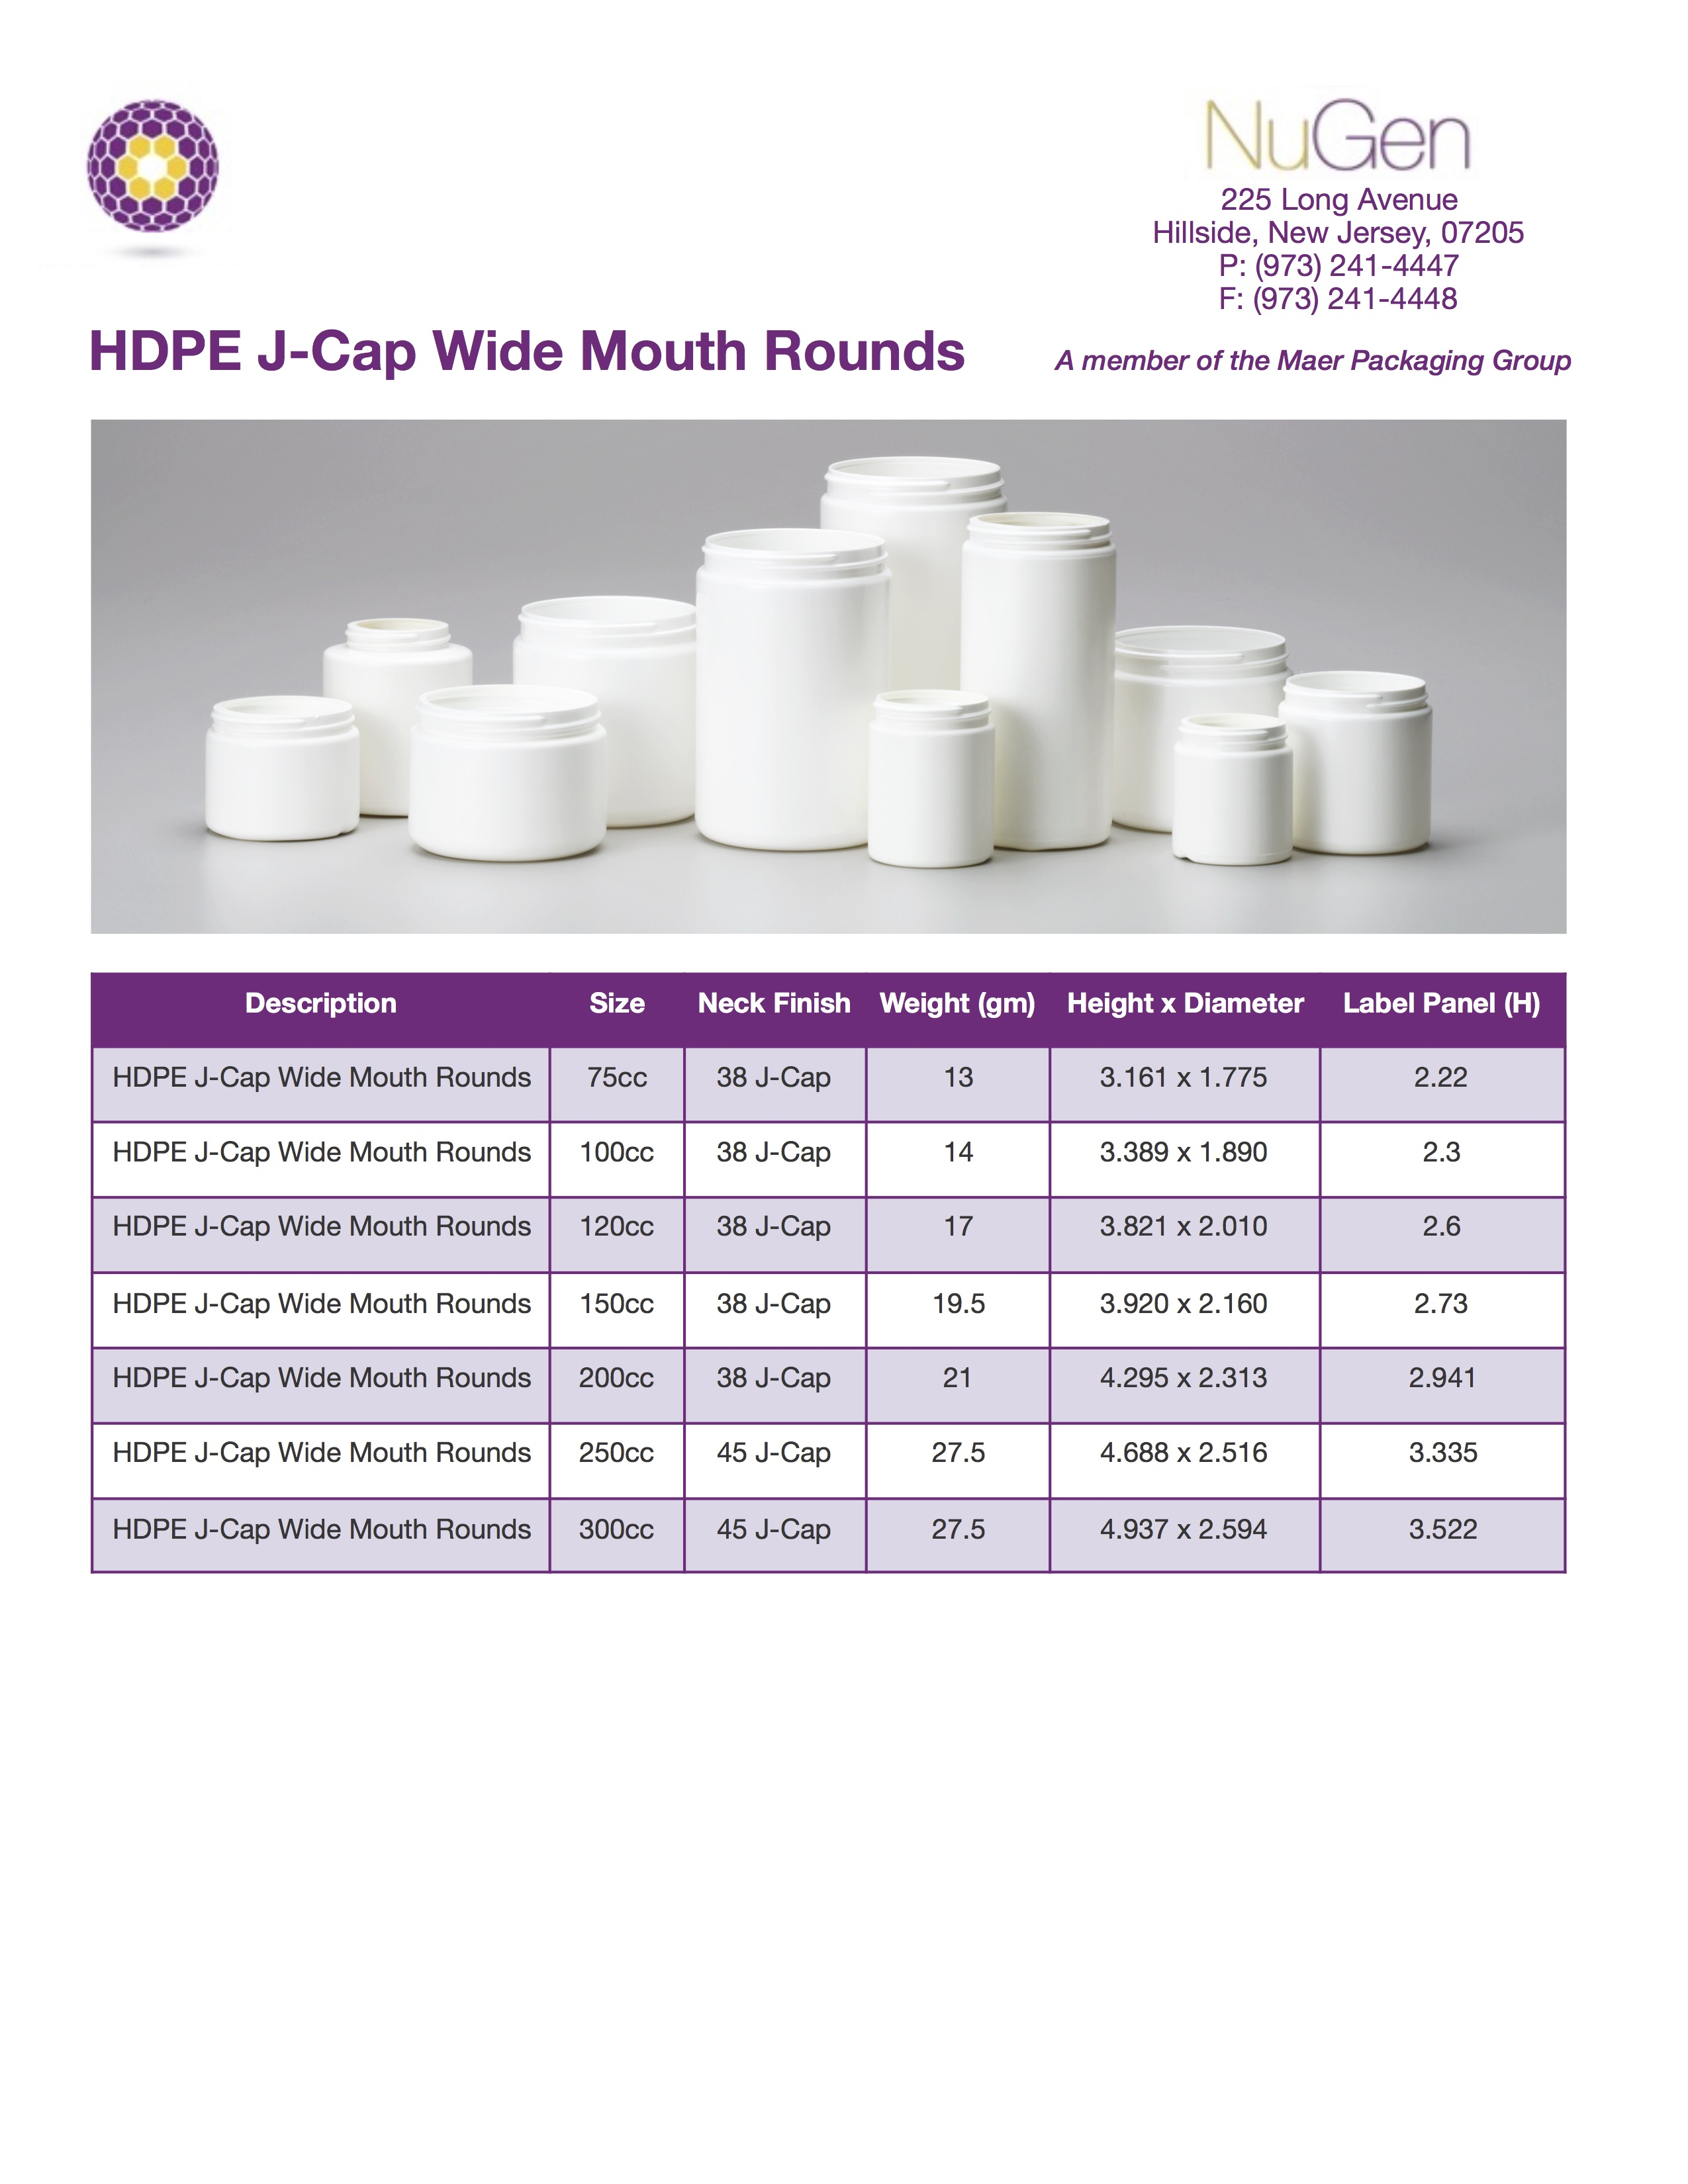 NUIGEN_HDPE_J-Cap_Wide_Mouth_Rounds-12-2-2015